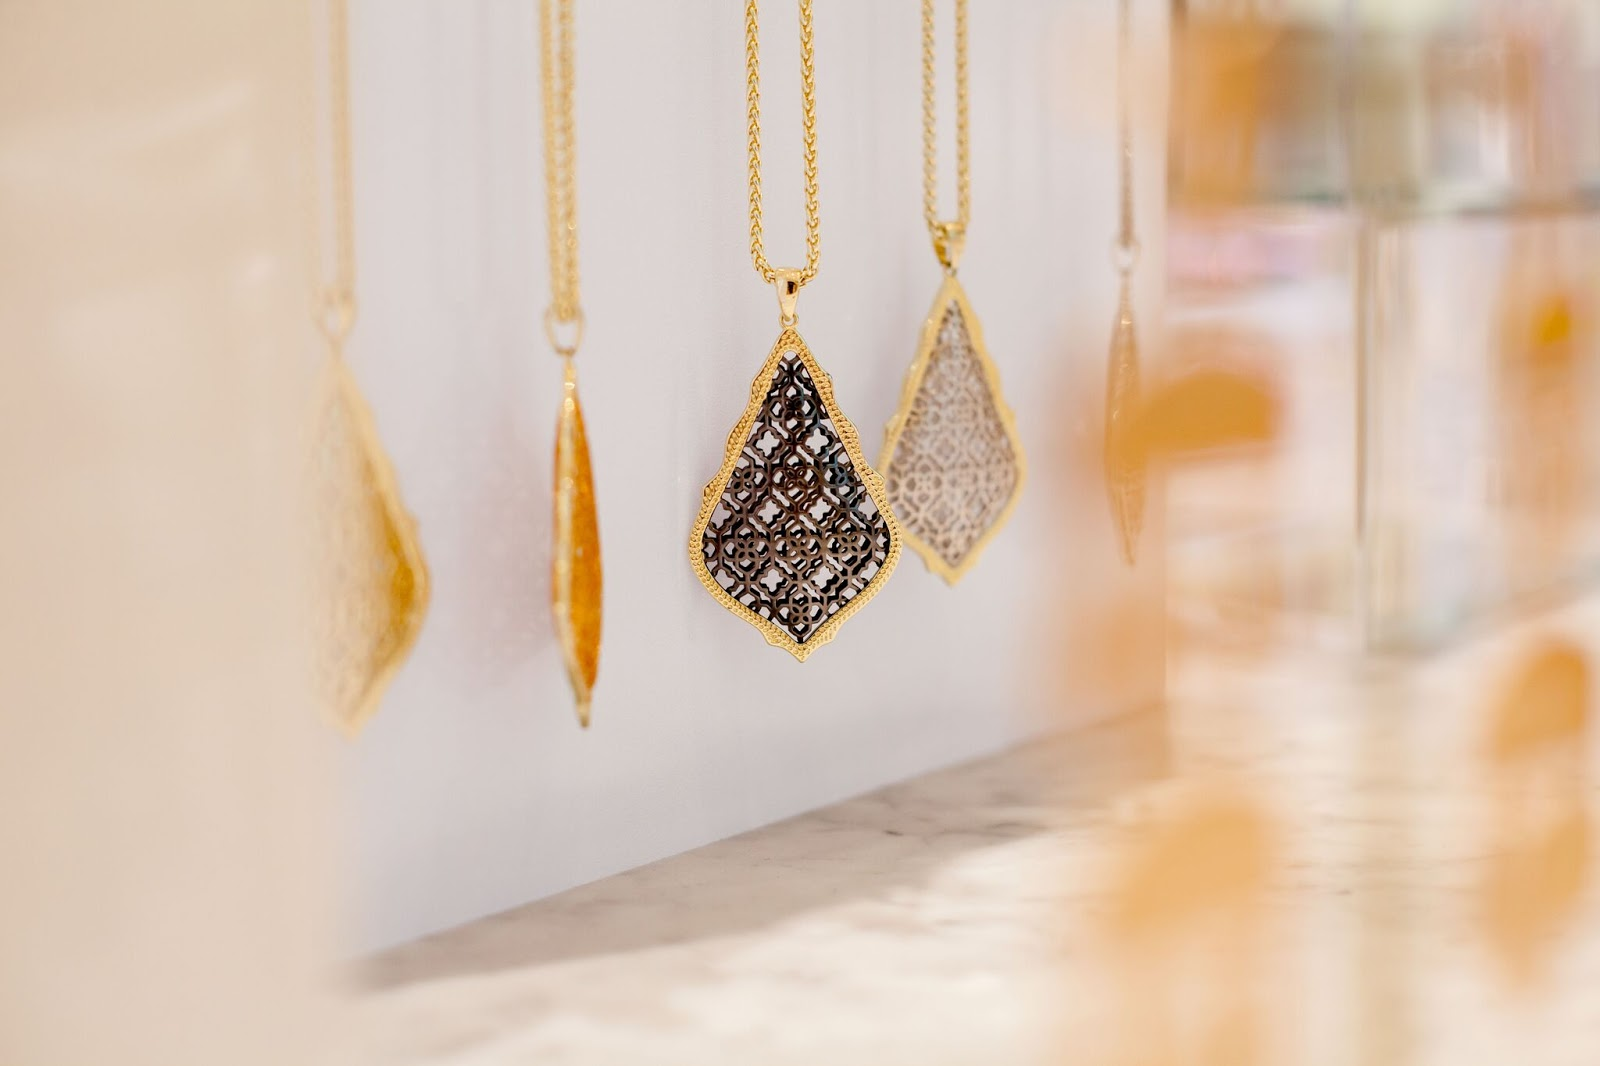 Kendra Scott San Diego shopping experience